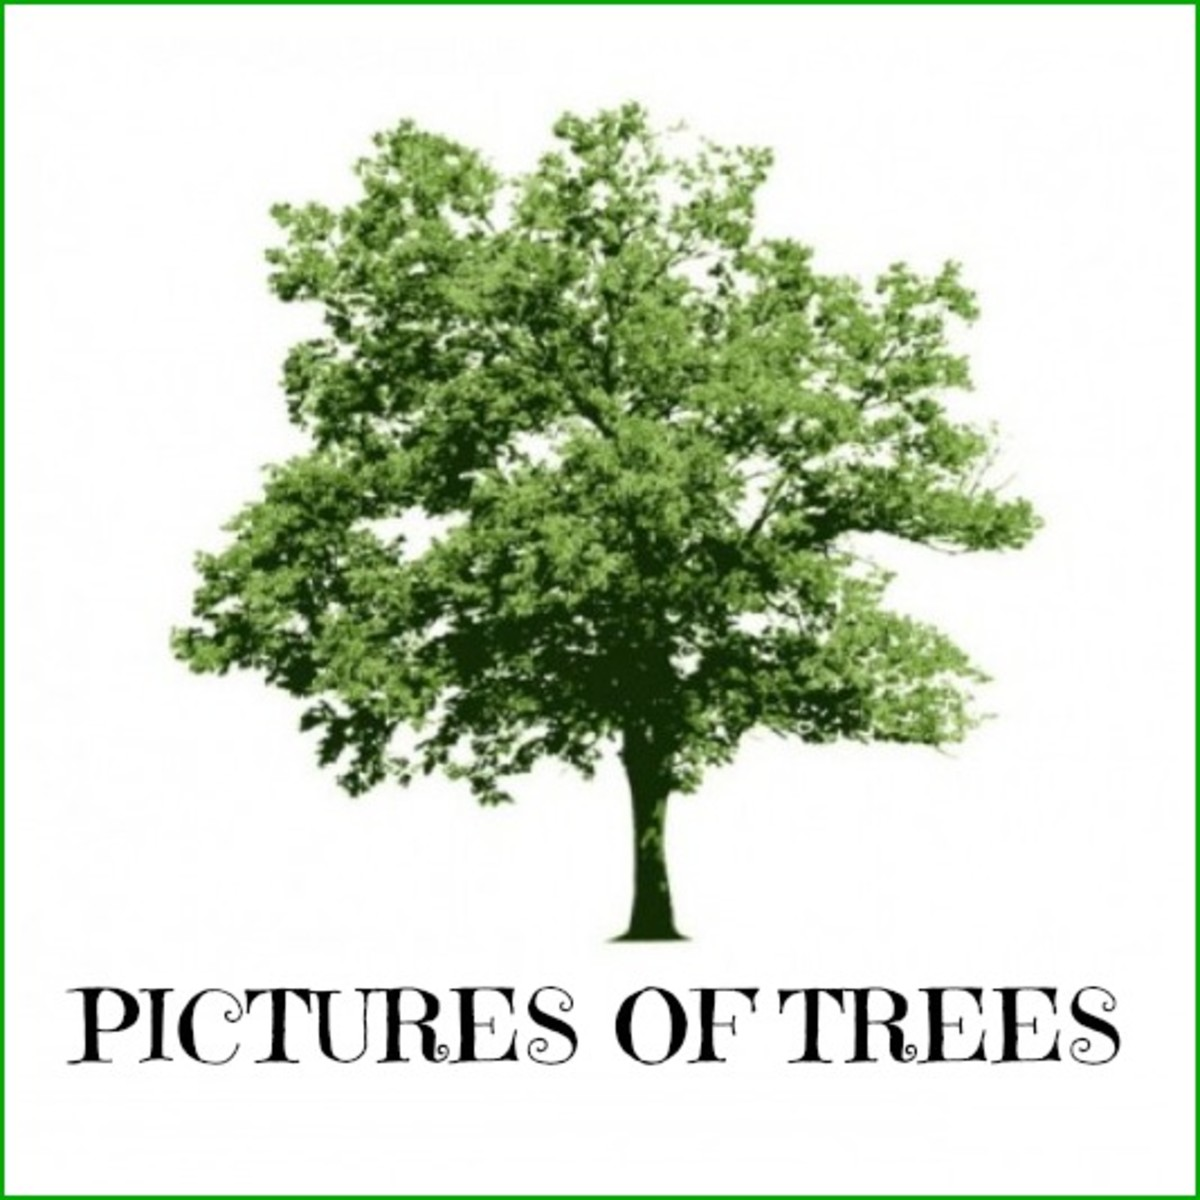 200 TREE PICTURES | Best Free Tree Photos with Tree Names